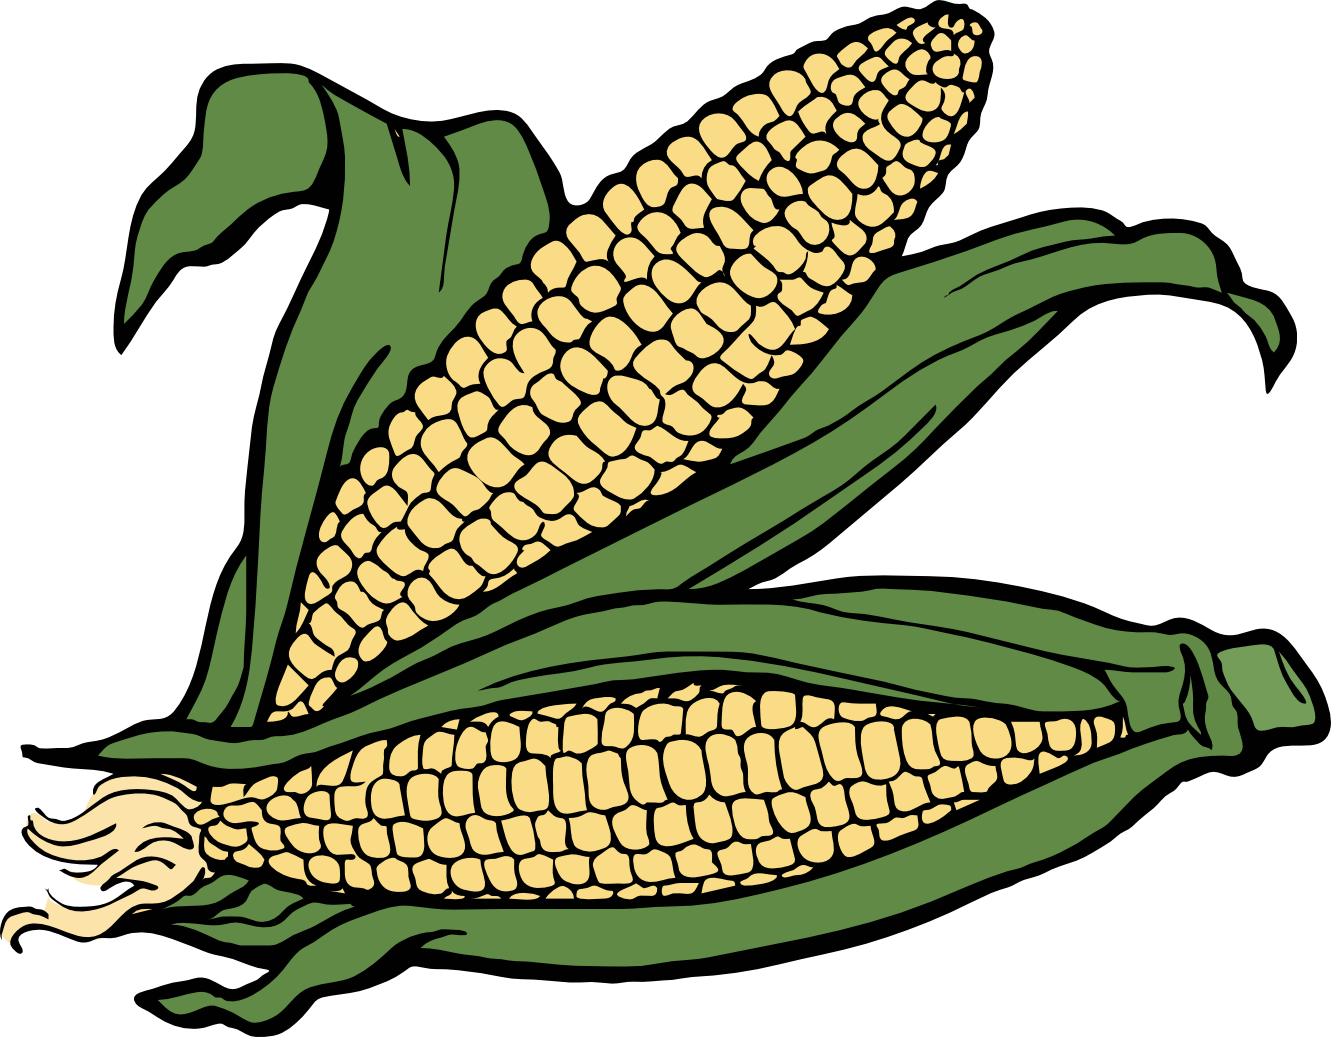 Indian at getdrawings com. Corn clipart animation